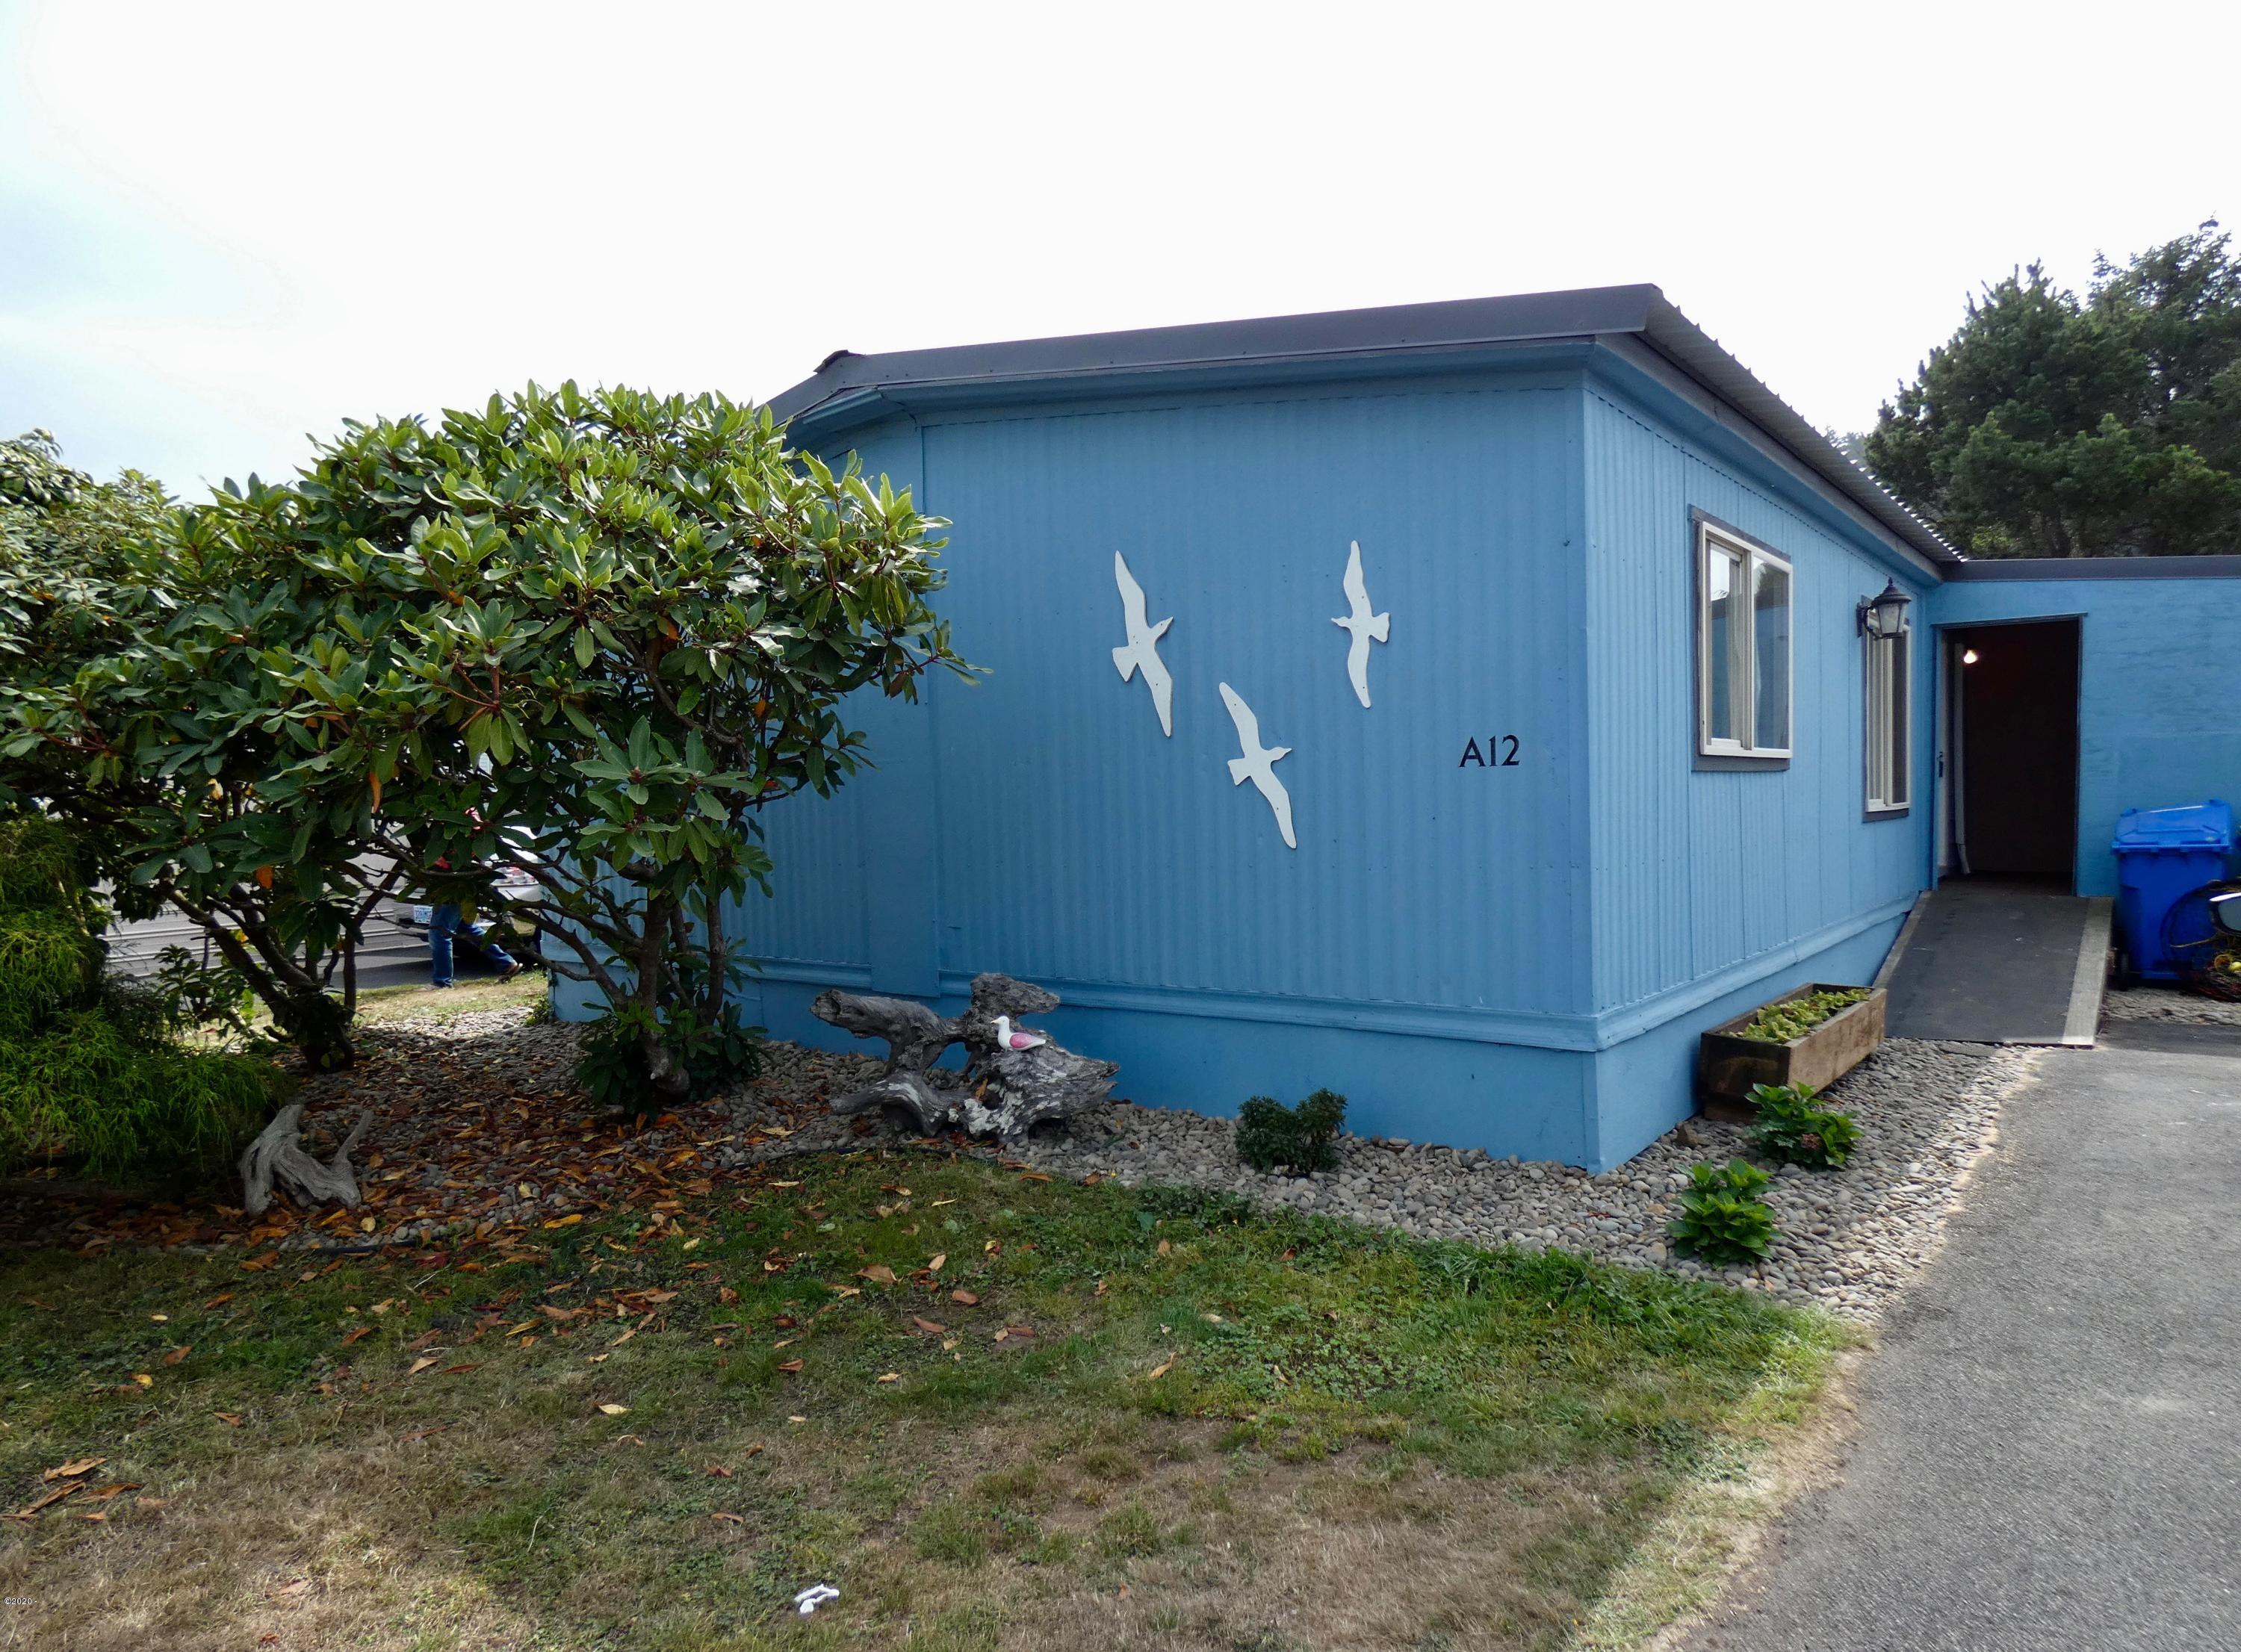 955 NE Mill St, A-12, Waldport, OR 97394